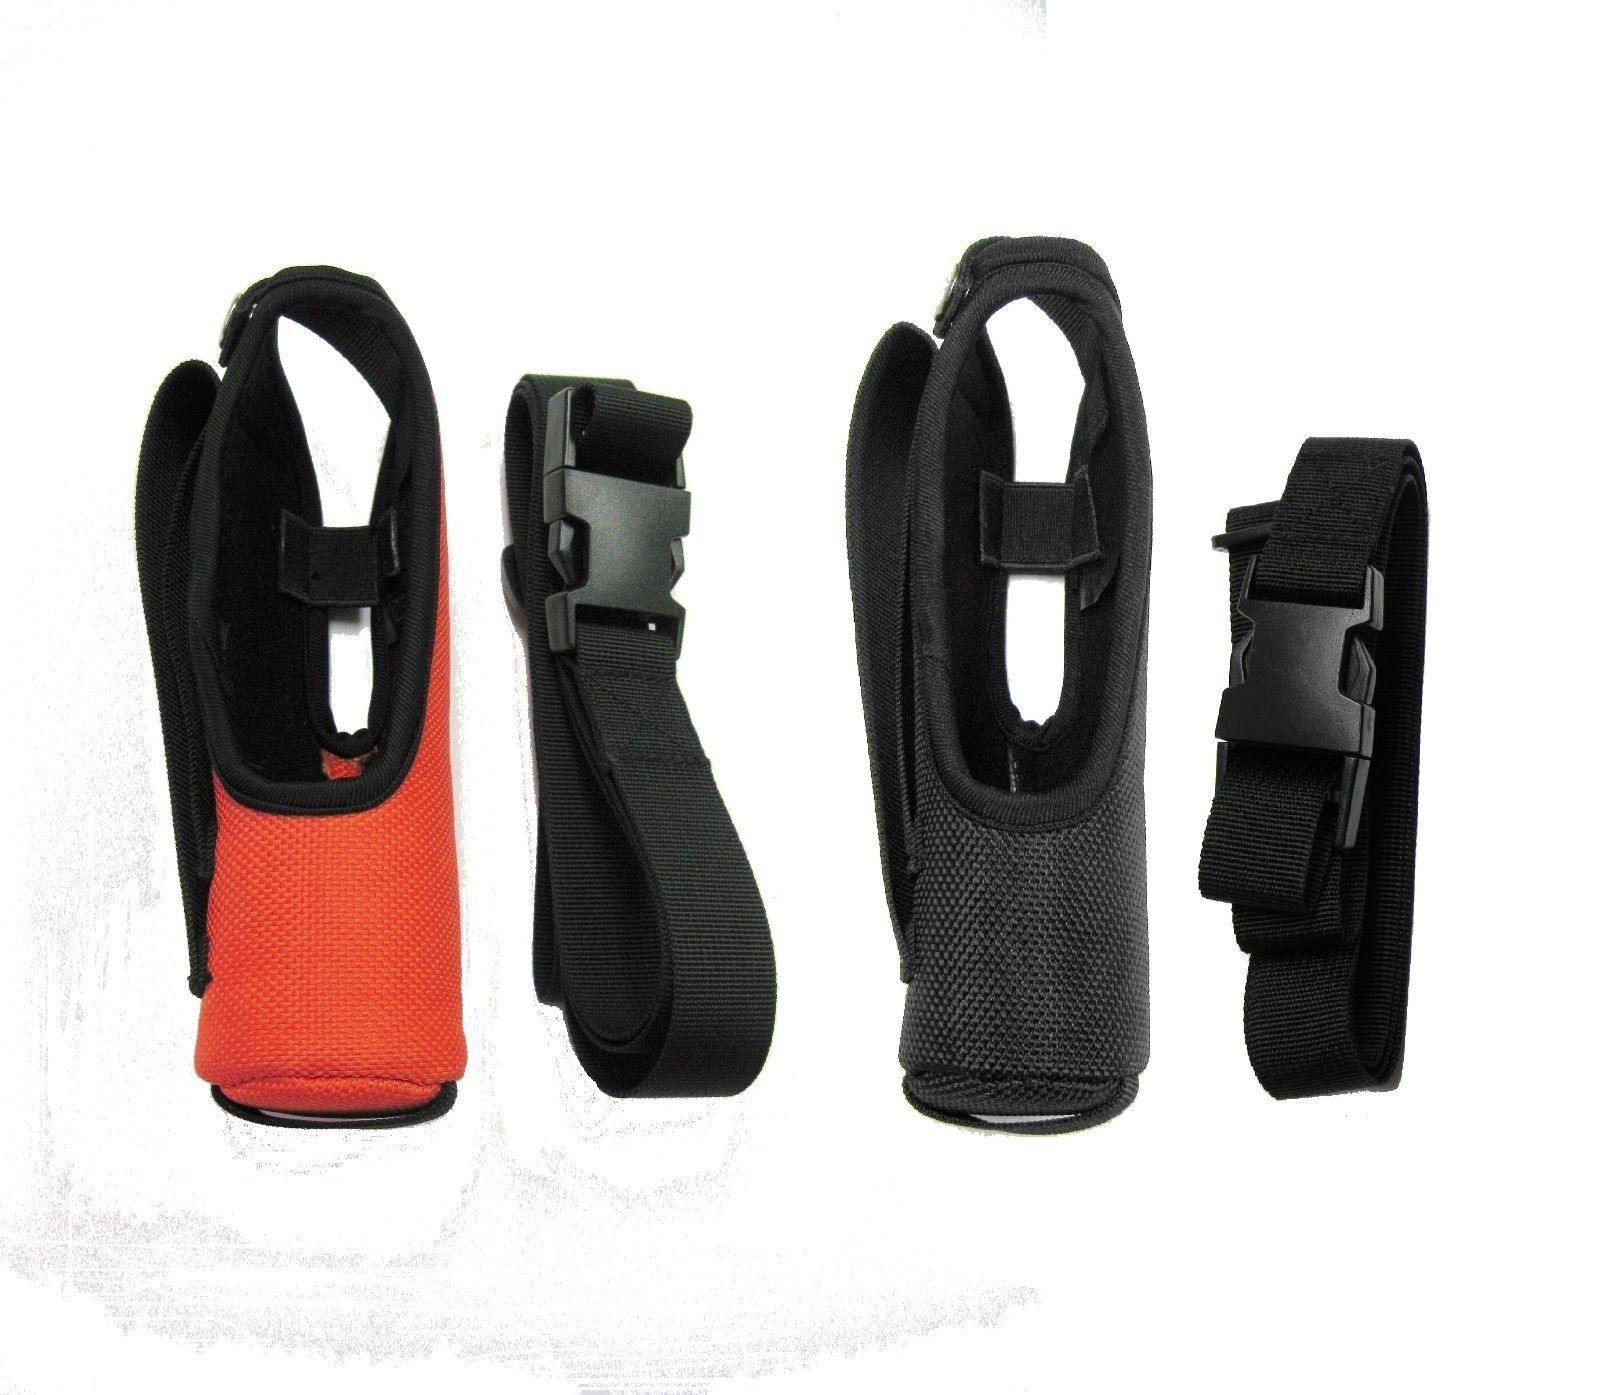 Tri-Tronics G3® and G3 EXP® Field and Pro Series Holster GV - Pro Black